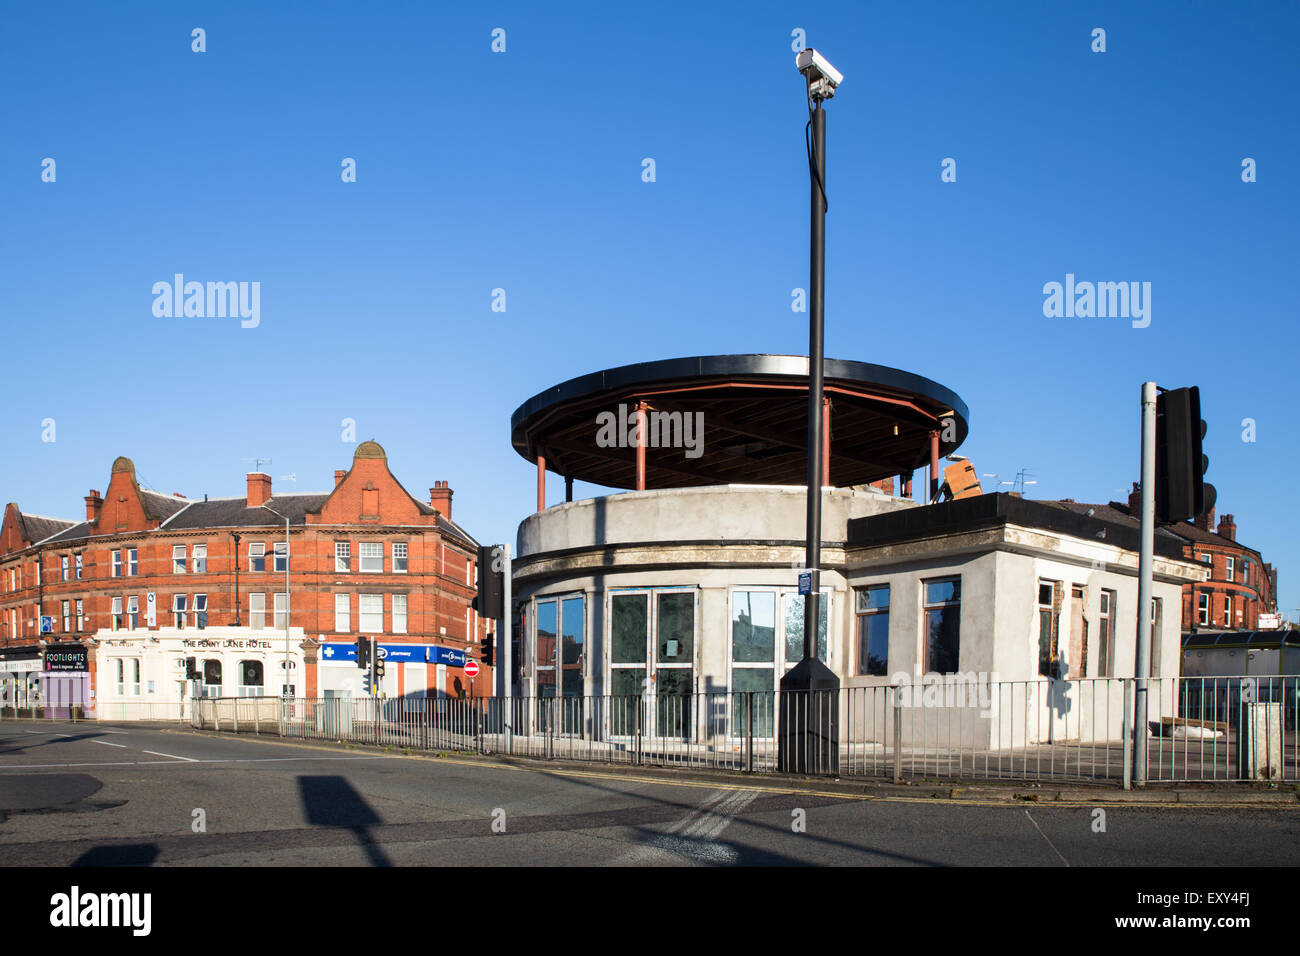 Liverpool, United Kingdom - October 12, 2014: View of famous roundabout bus station on Penny Lane in Liverpool, - Stock Image